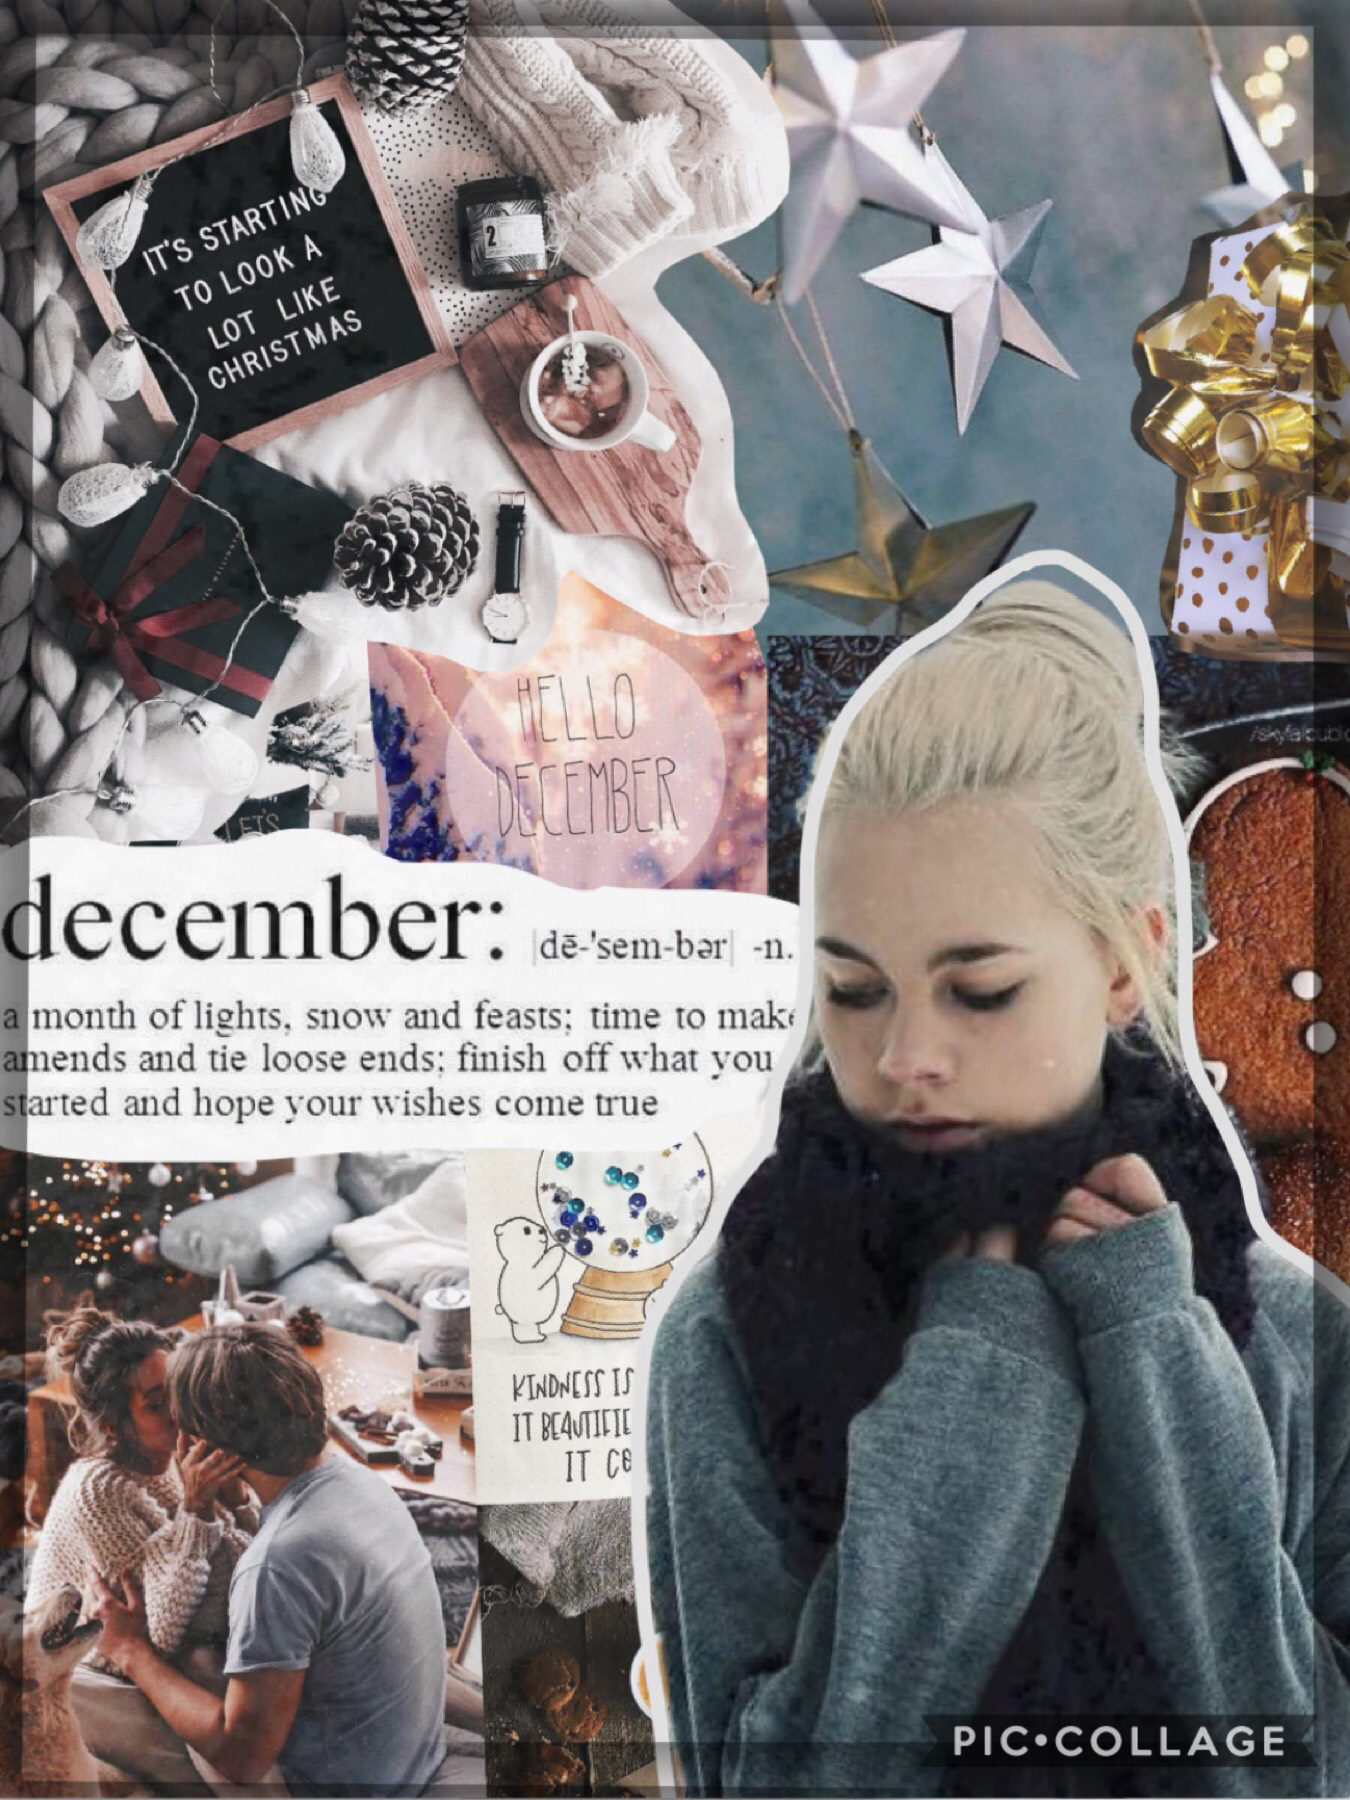 ❄️12/4/2018❄️ Tap the snowflake! Hey lovelies! I can't believe it's already December!!🎄  Rate this /10? Q// Whats your favorite thing about December? A// it's pretty obvious, CHRISTMAS! I also go caroling with a group of friends so that's fun too..🙃